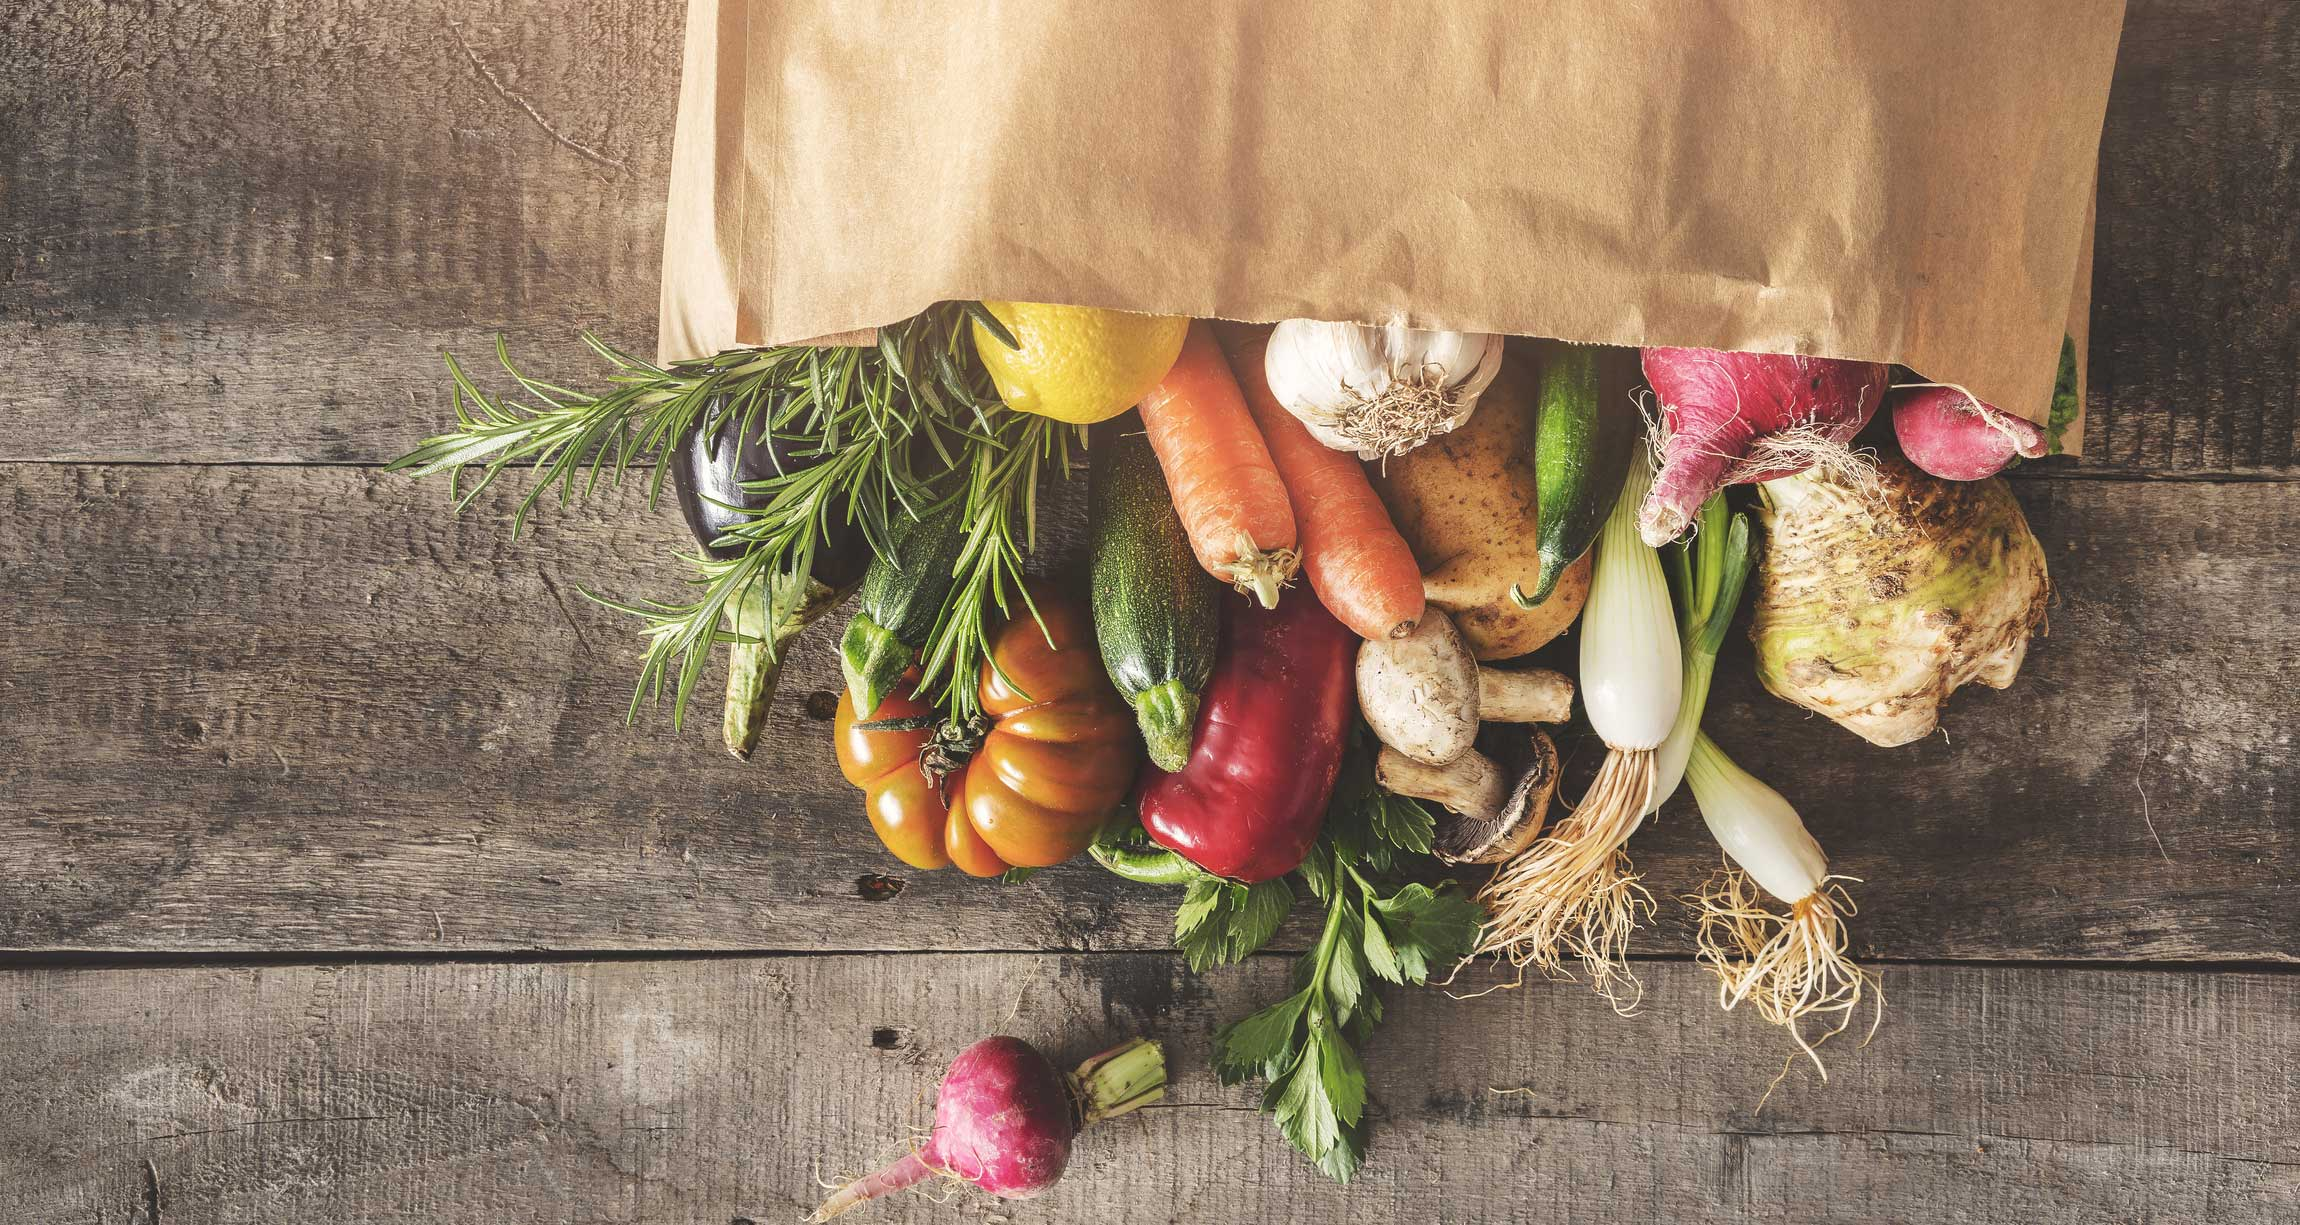 vegetables in a paper bag lying on a table